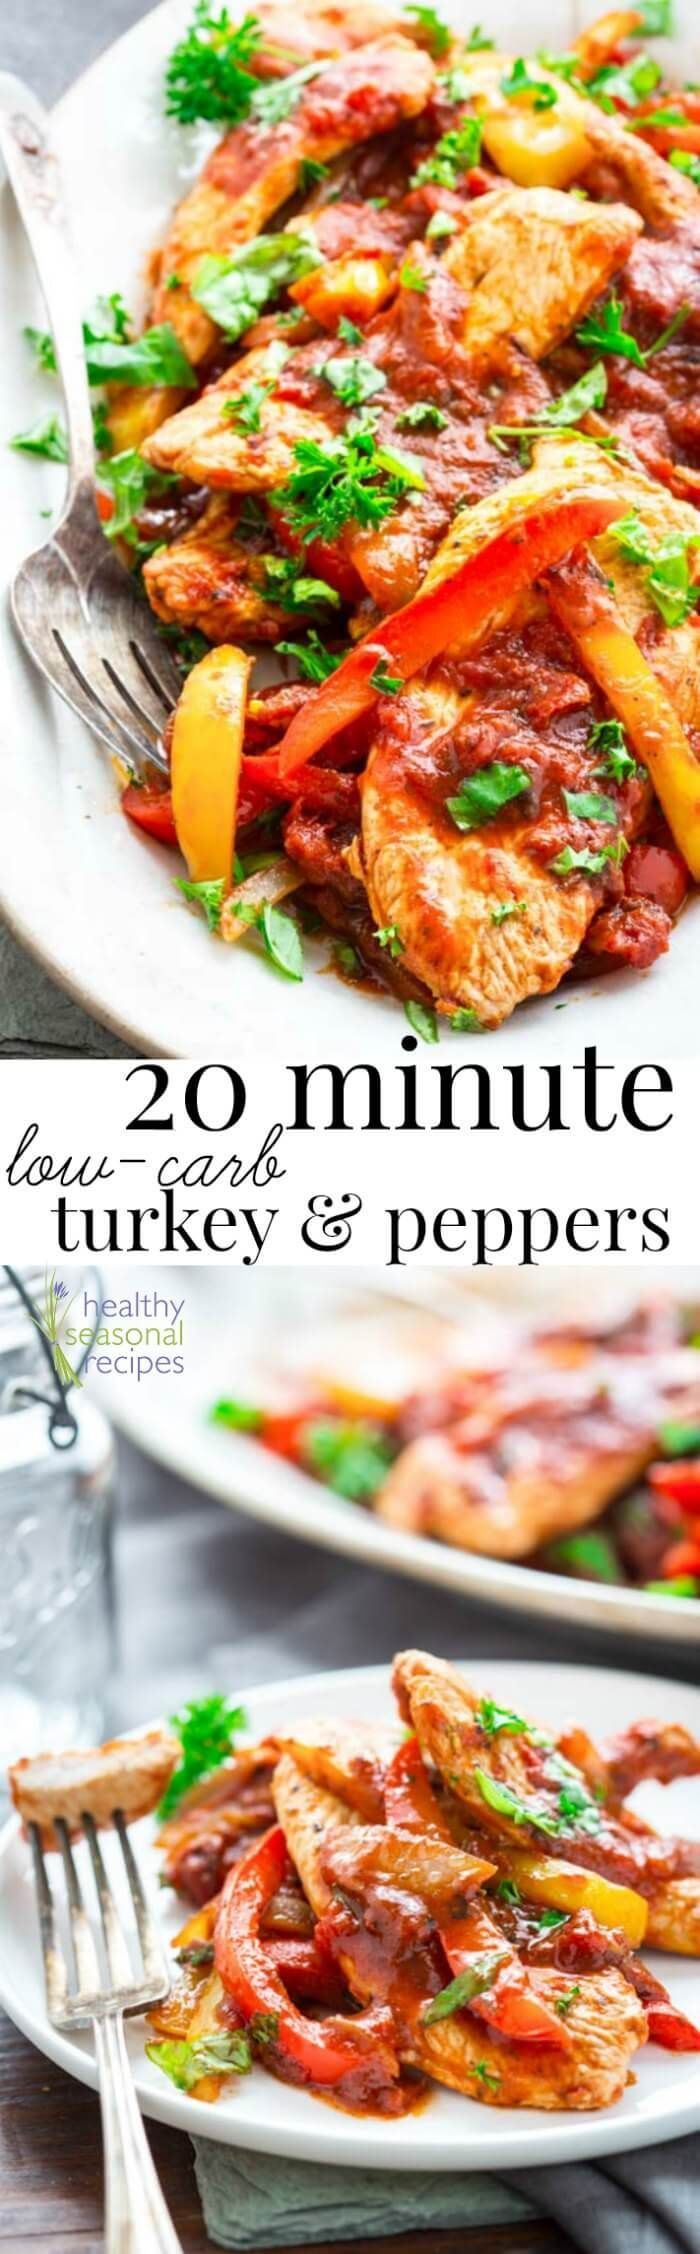 This 20 minute Turkey and Pepper sauté is Paleo, gluten-free, whole 30 and low-carb, so pretty much everyone can enjoy it! @healthyseasonal